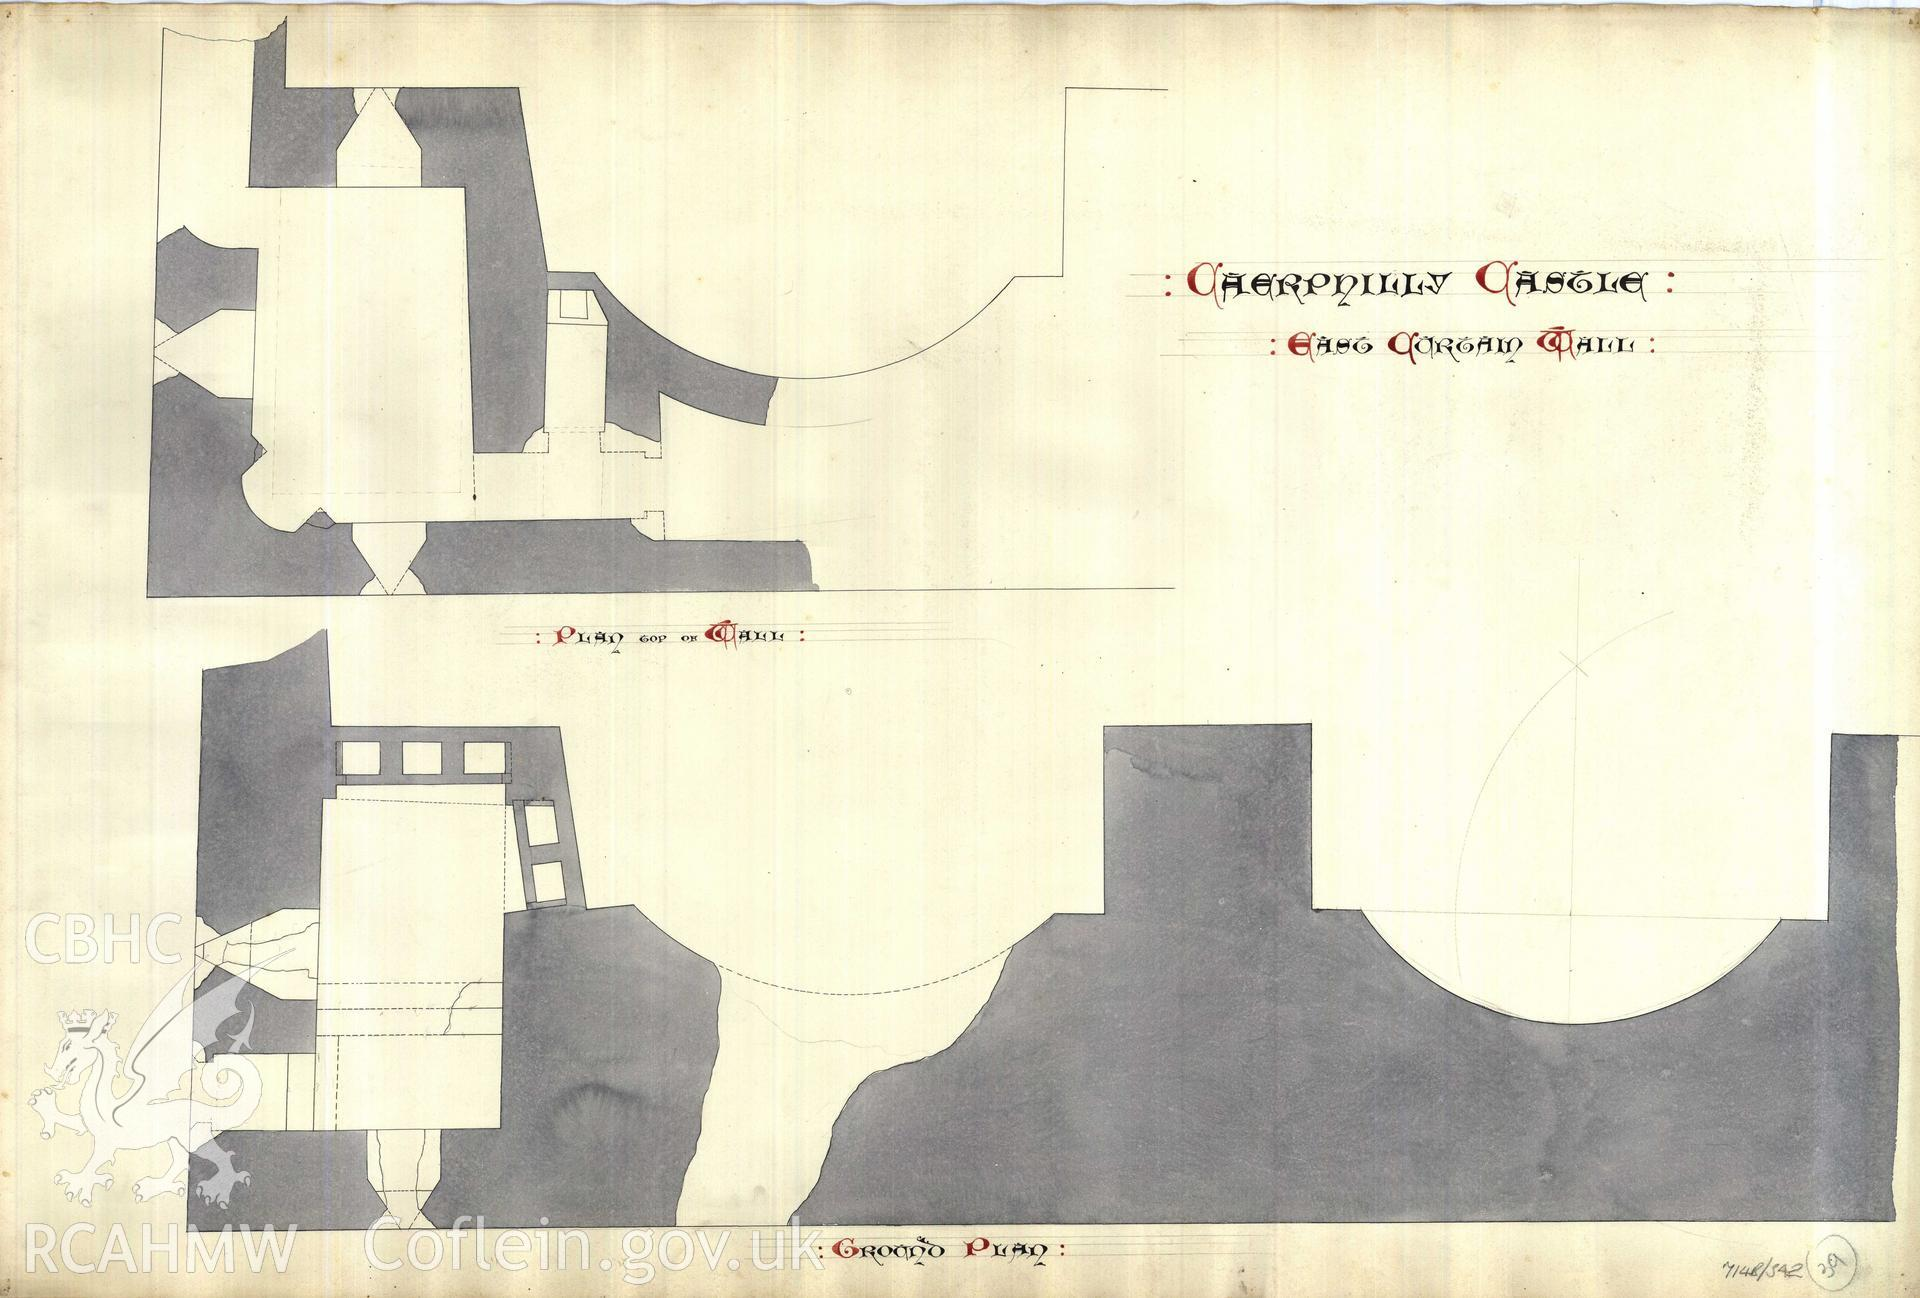 Cadw guardianship monument drawing of Caerphilly Castle. Dam front S, 2 N bays, plan. Cadw Ref. No:714B/342. Scale 1:24.